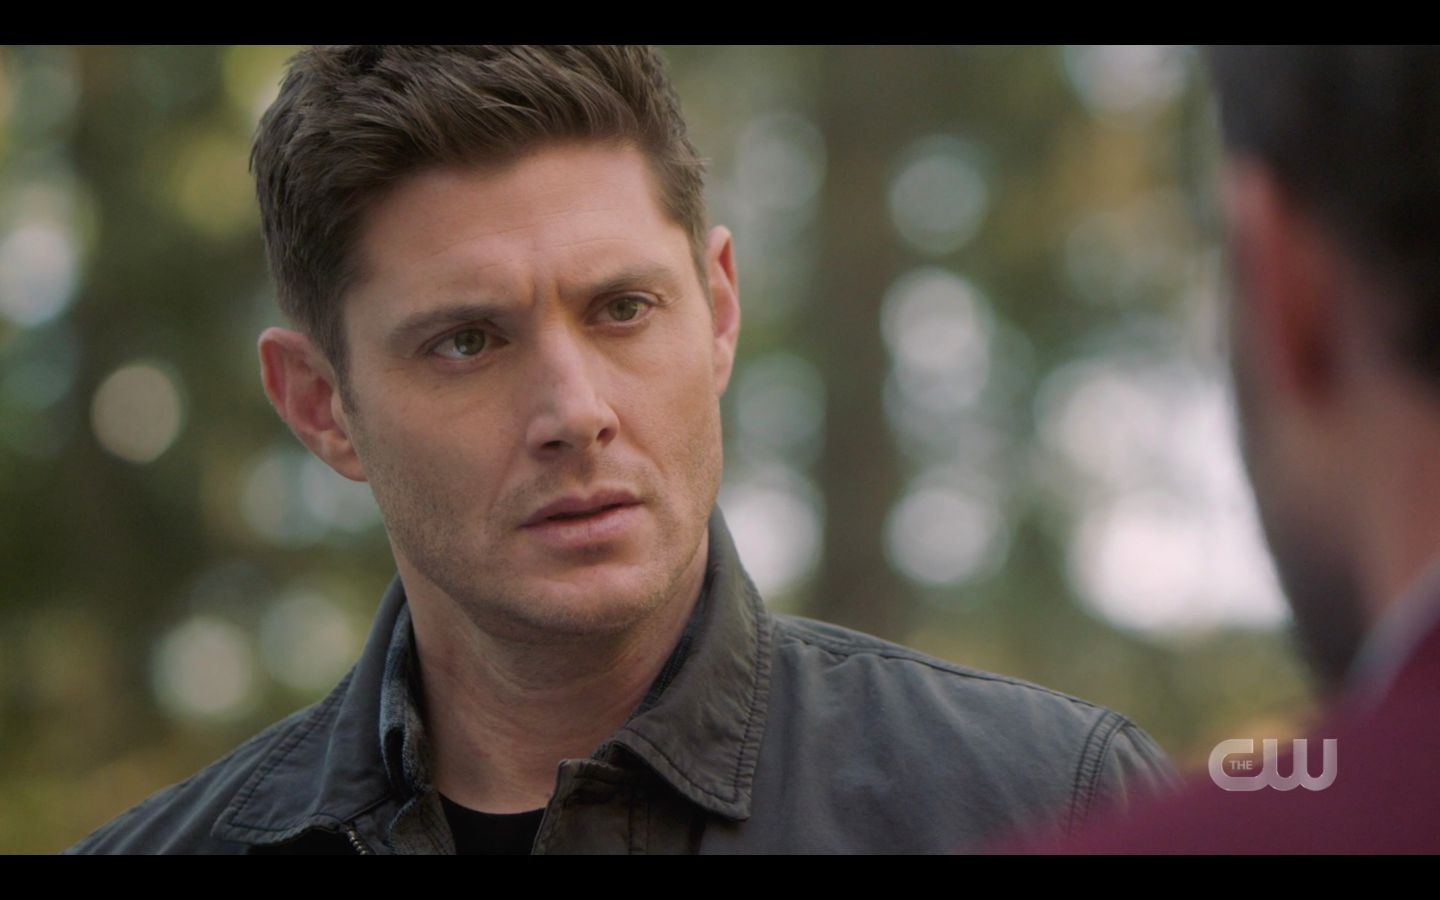 Dean Winchester considers killing Jack for Mary in deal with Chuck SPN 14.20